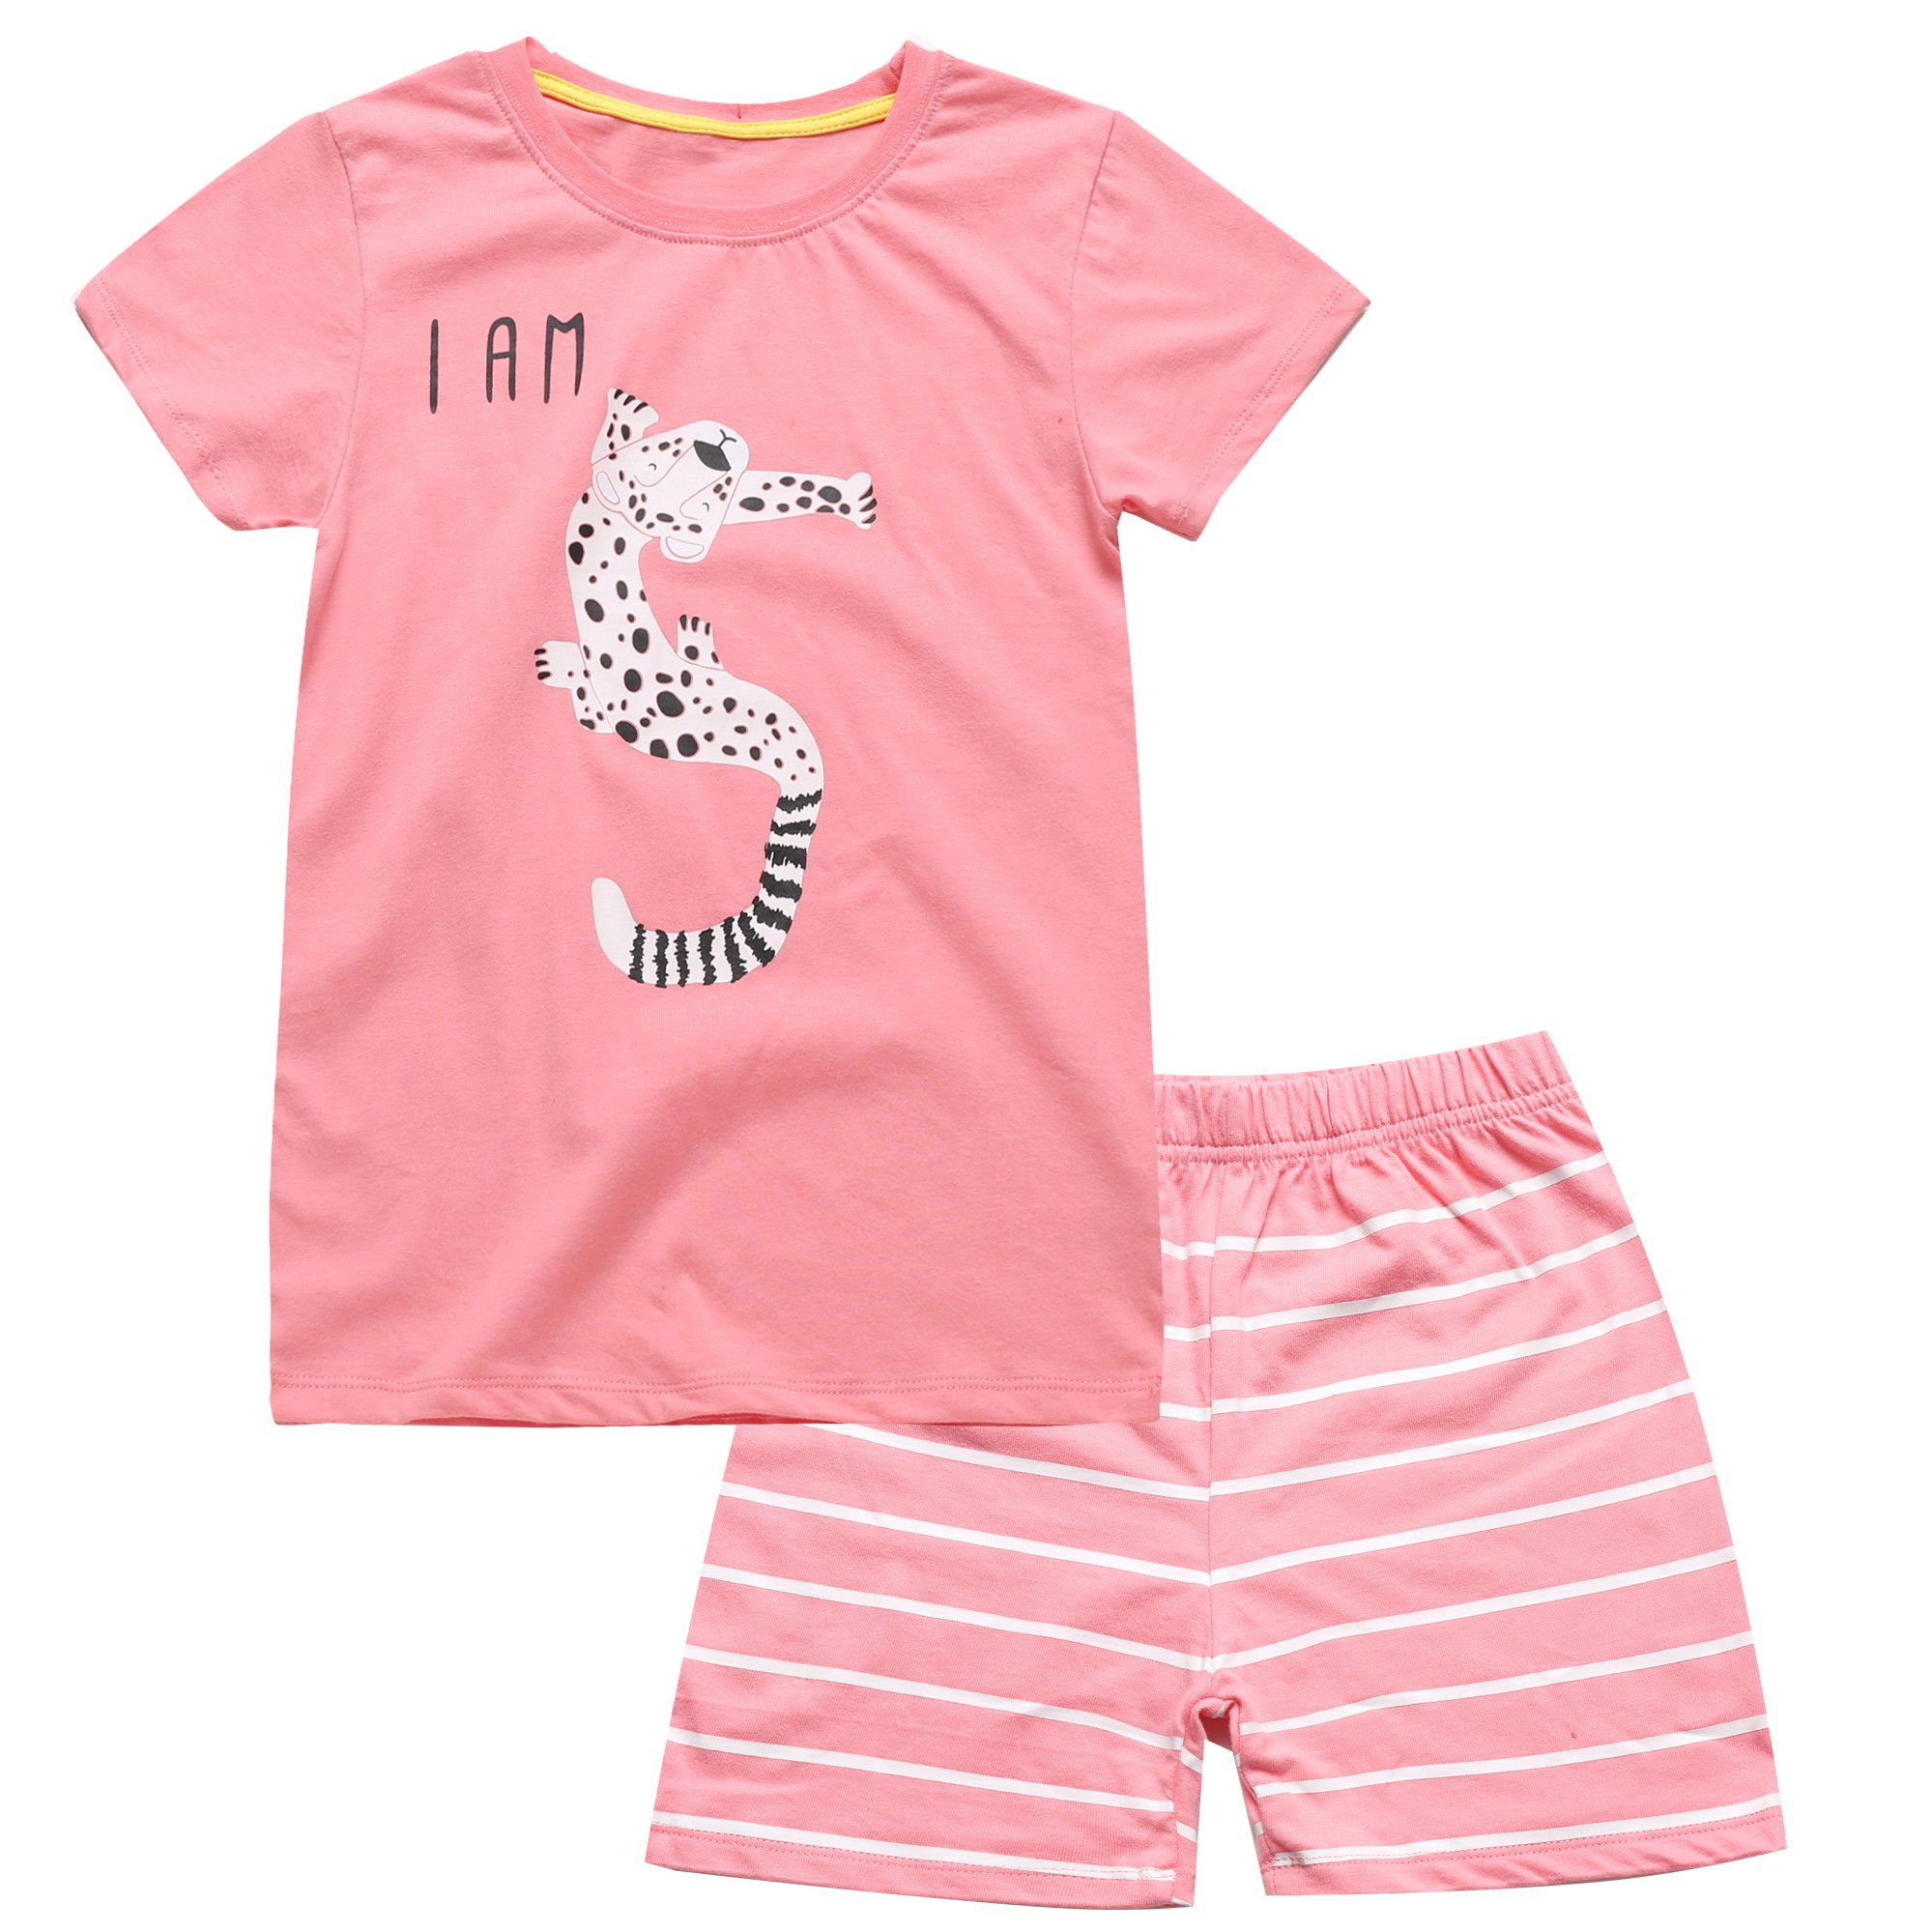 Color Changeable Little Girls' Clothes Set Animal Cartoon 5th Birthdays Gift Shirt with Shorts (5T)